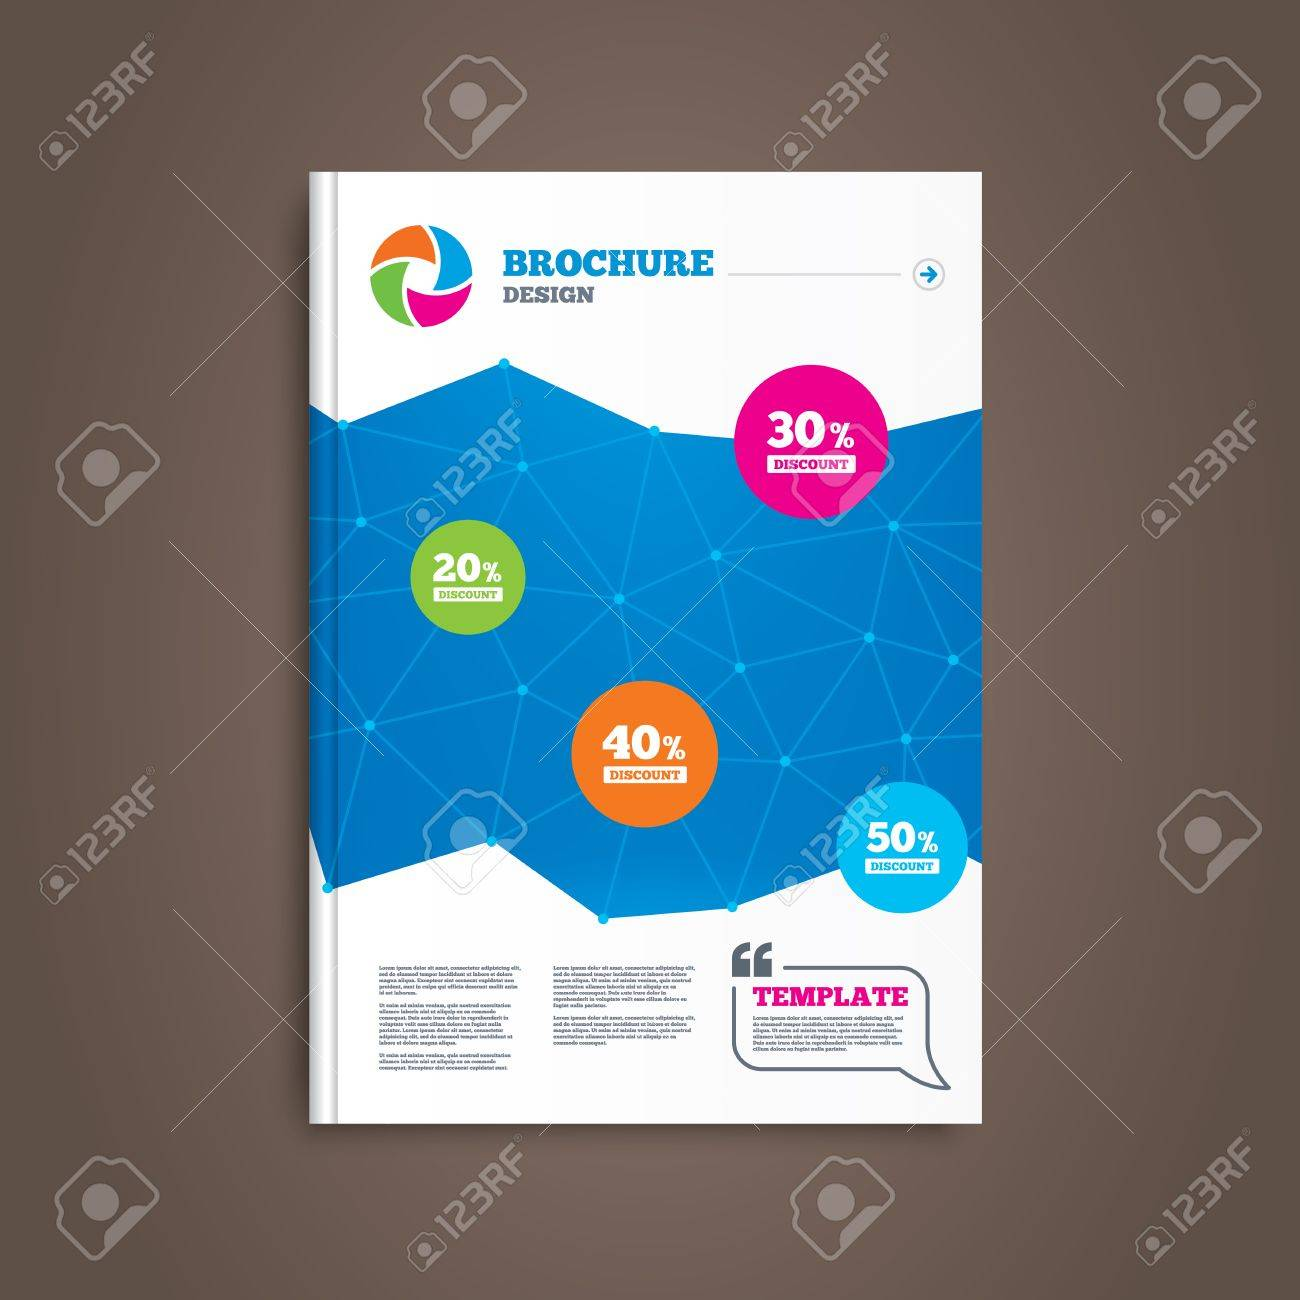 brochure or flyer design discount icons special offer brochure or flyer design discount icons special offer price signs 20